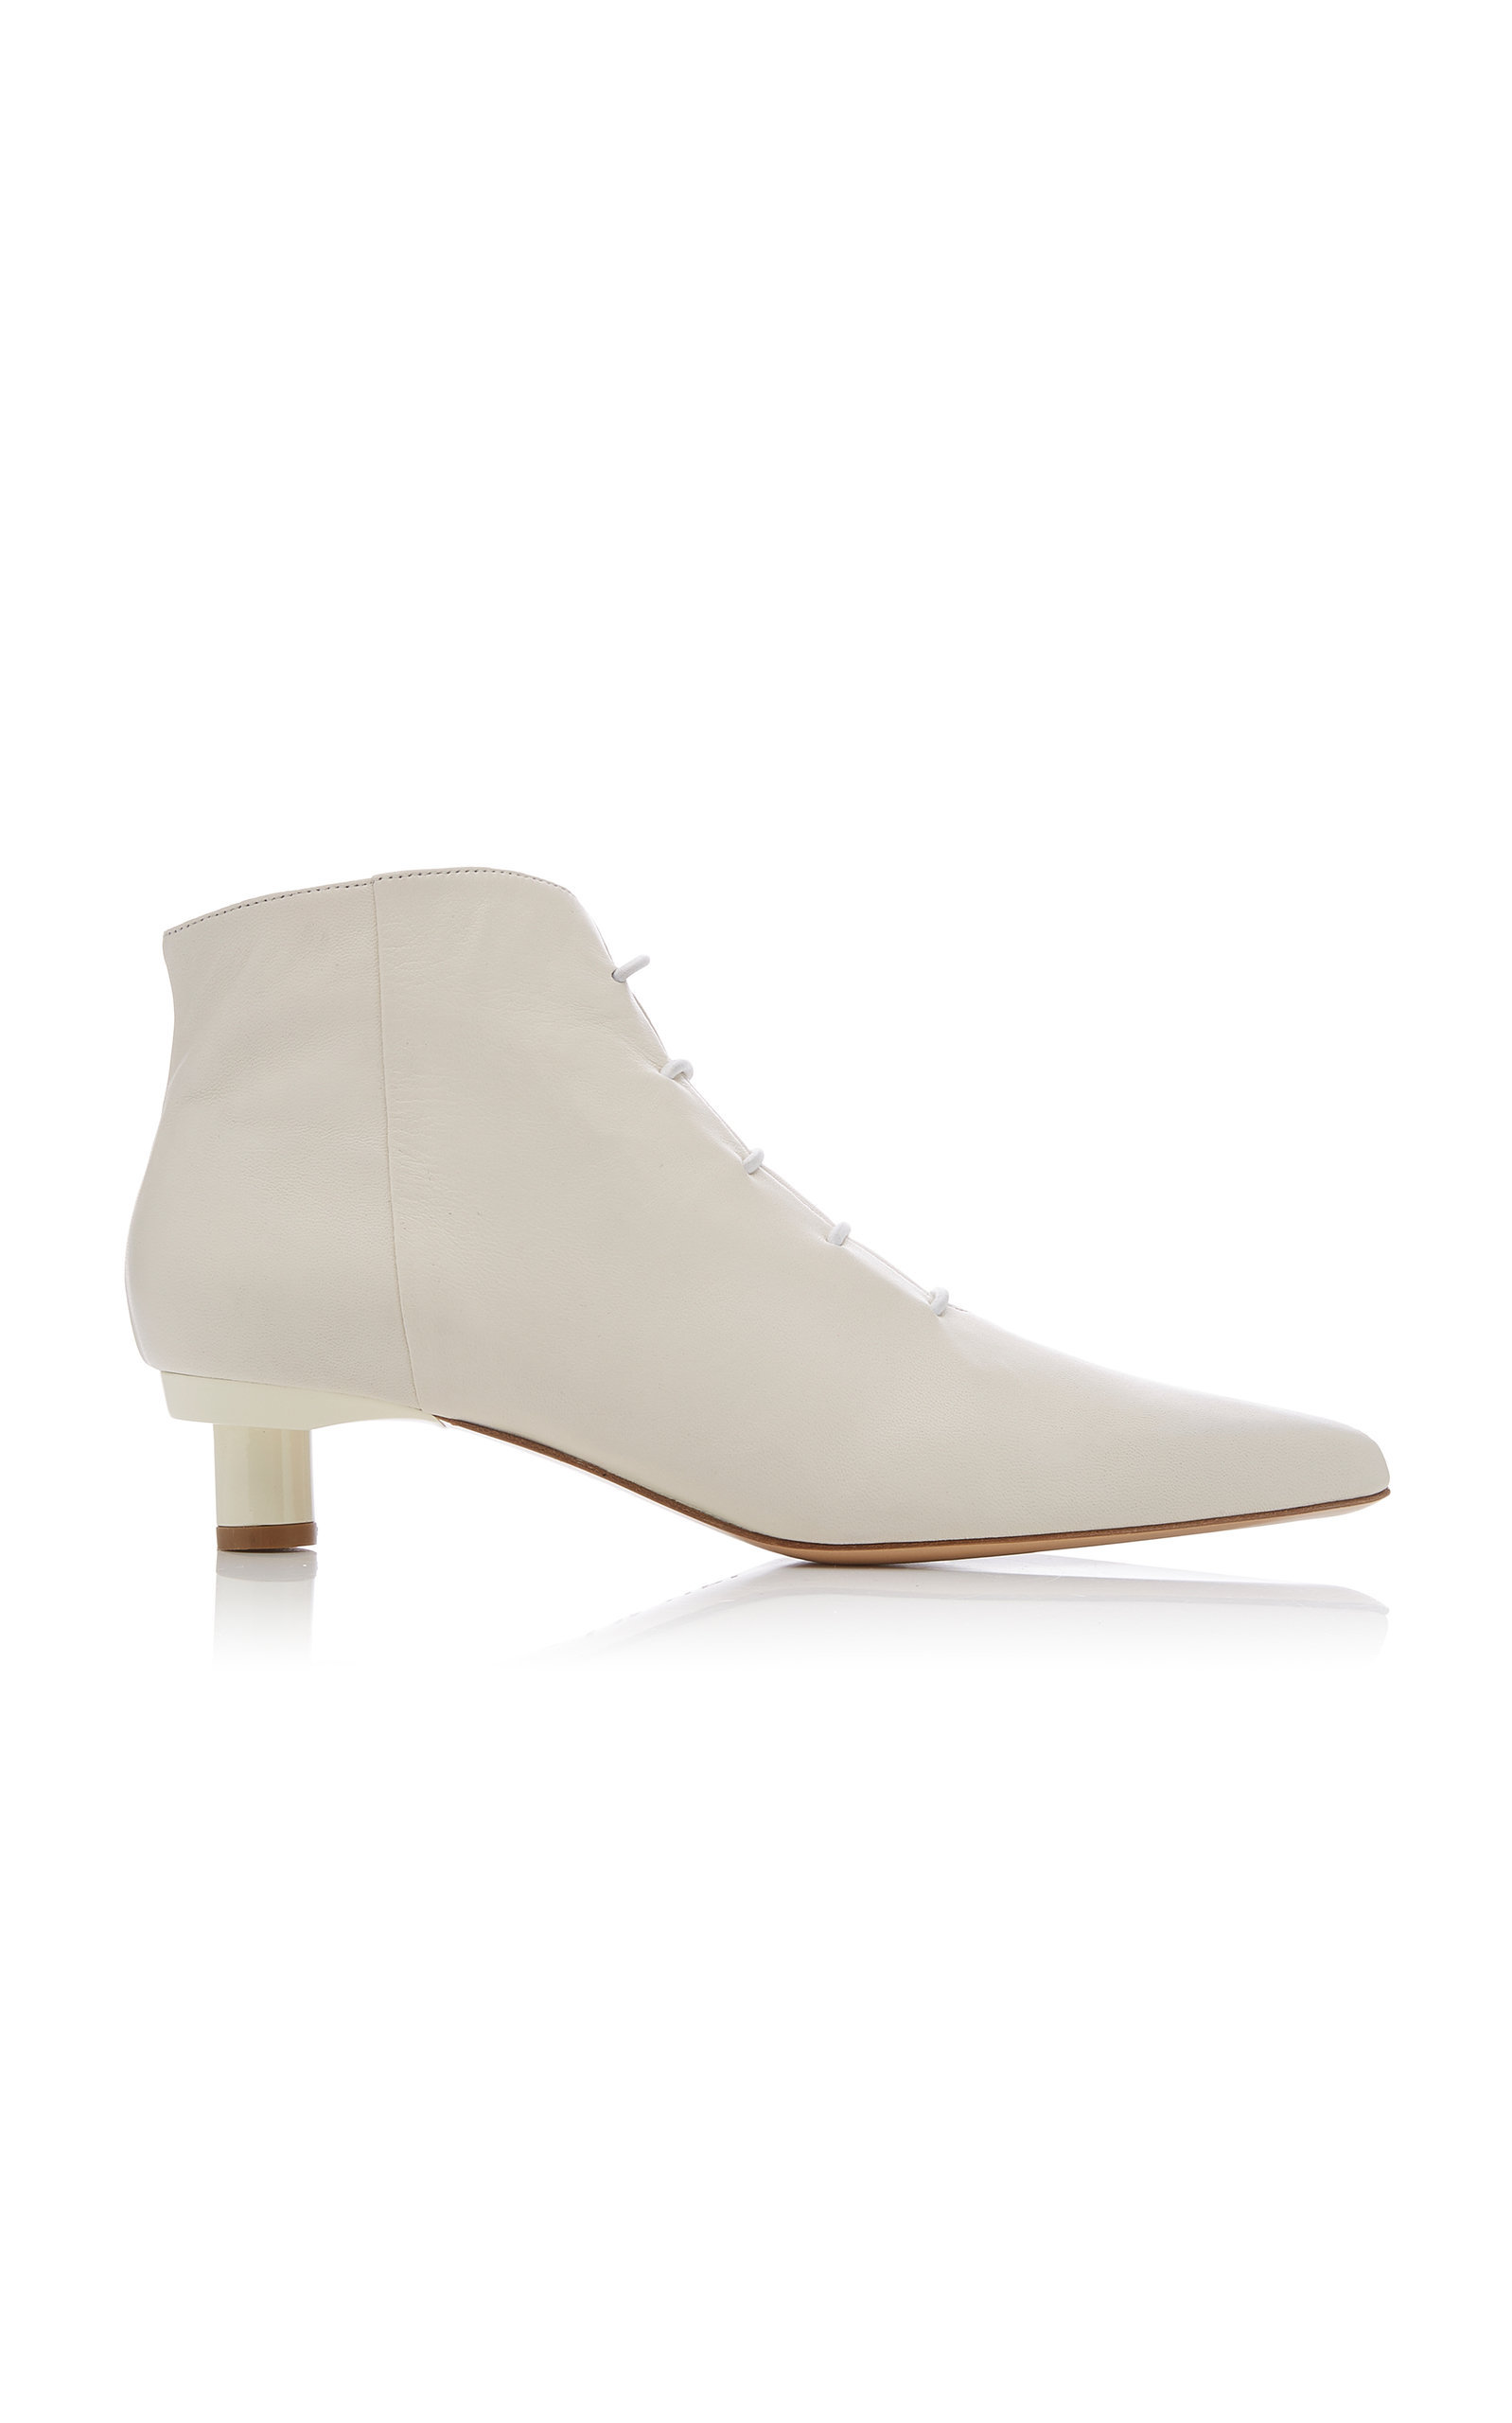 Asher Leather Booties | $725